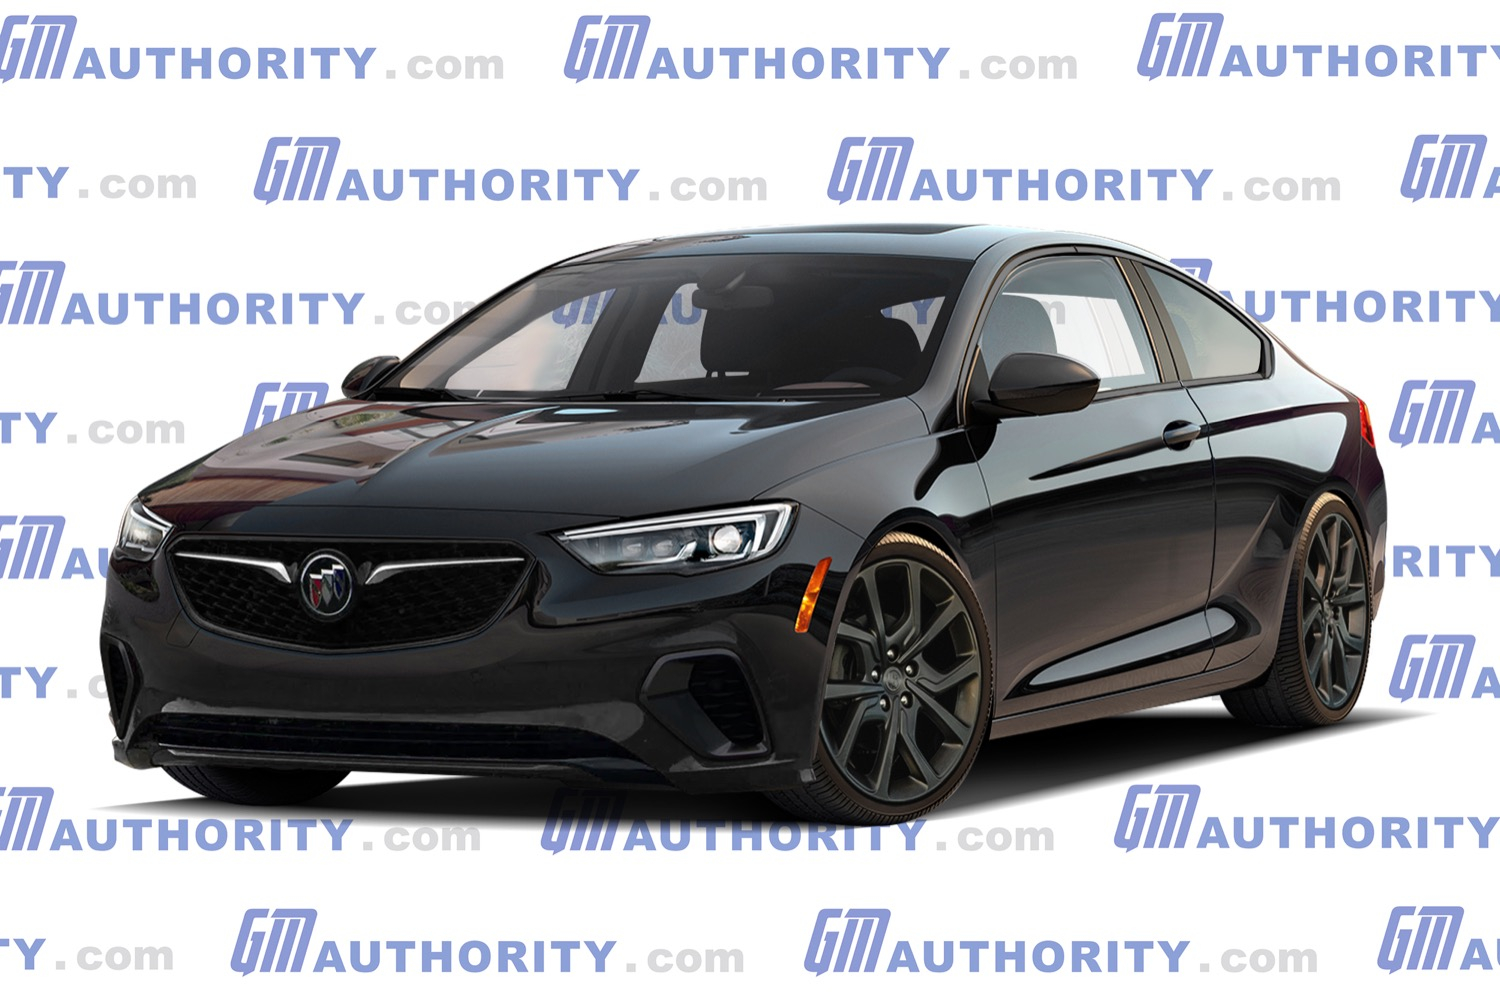 Modern Buick Regal Gnx Rendered | Gm Authority Is There A 2022 Buick Regal